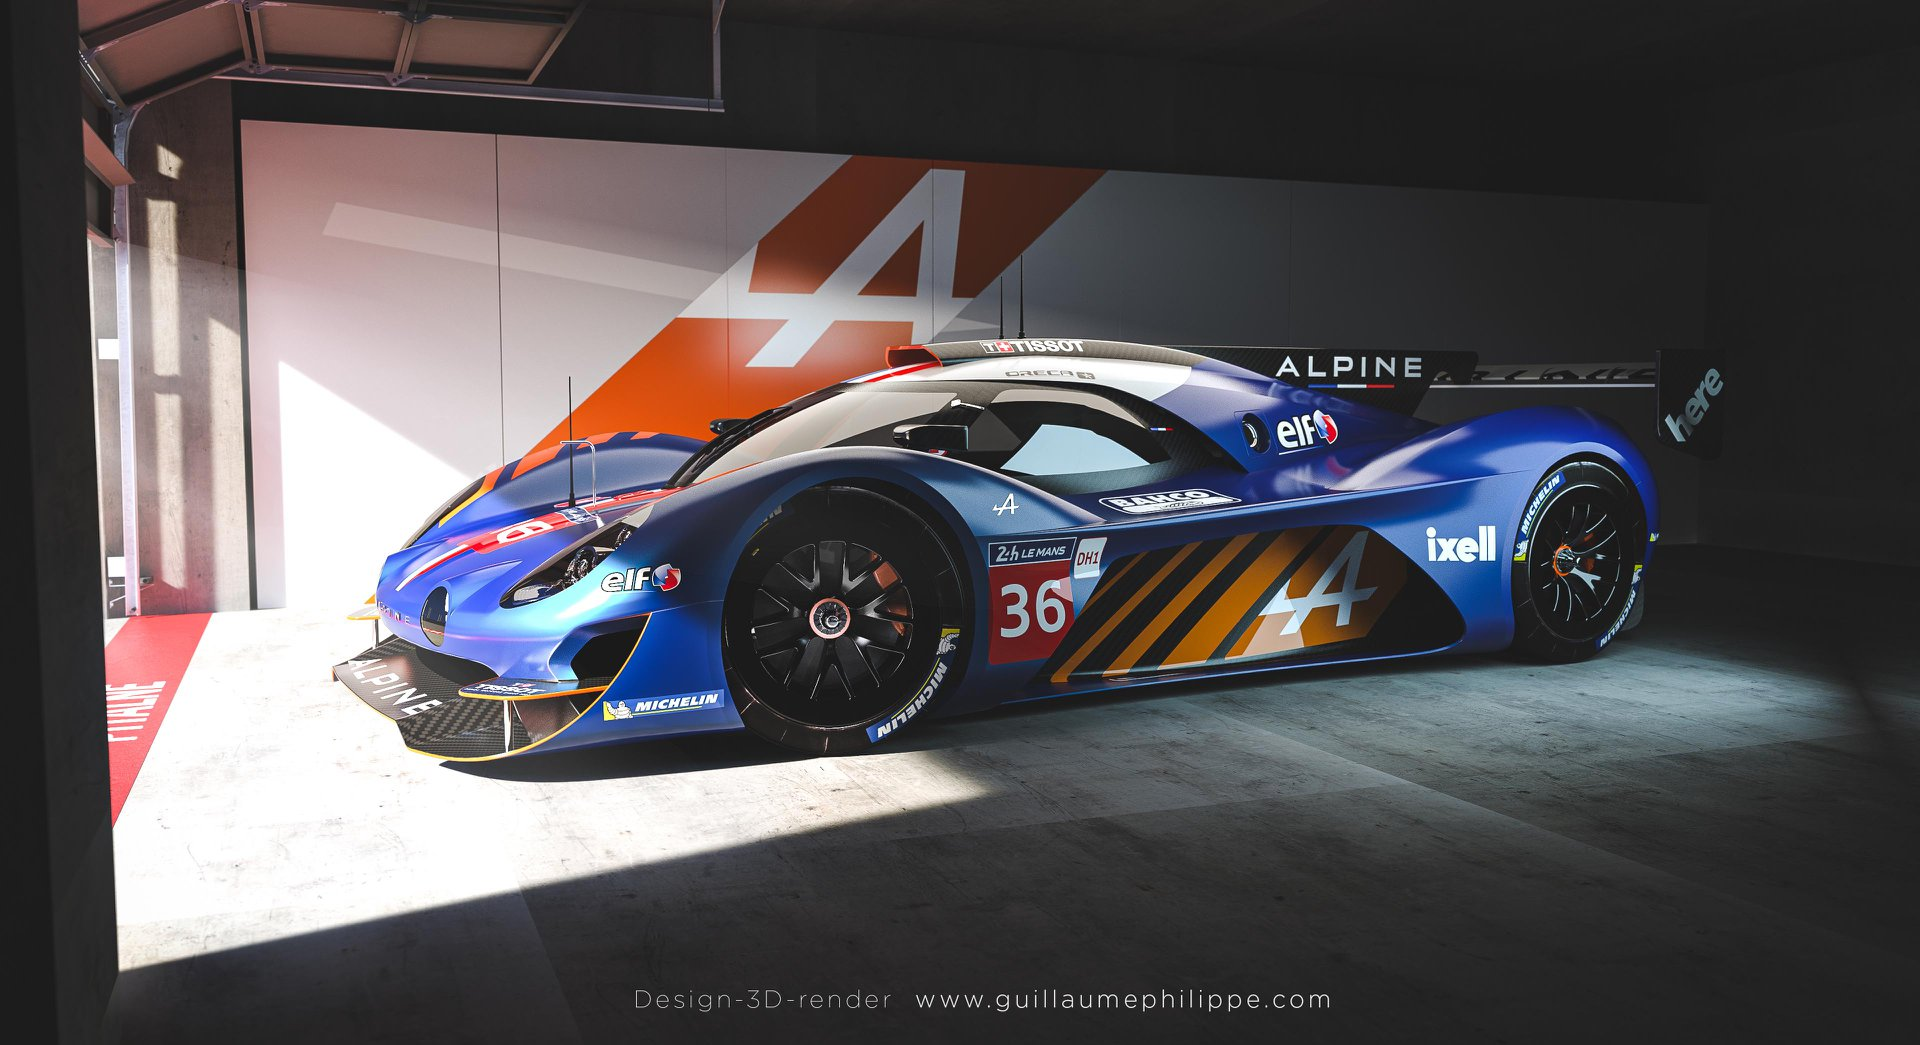 Alpine A480 LDMh design 4